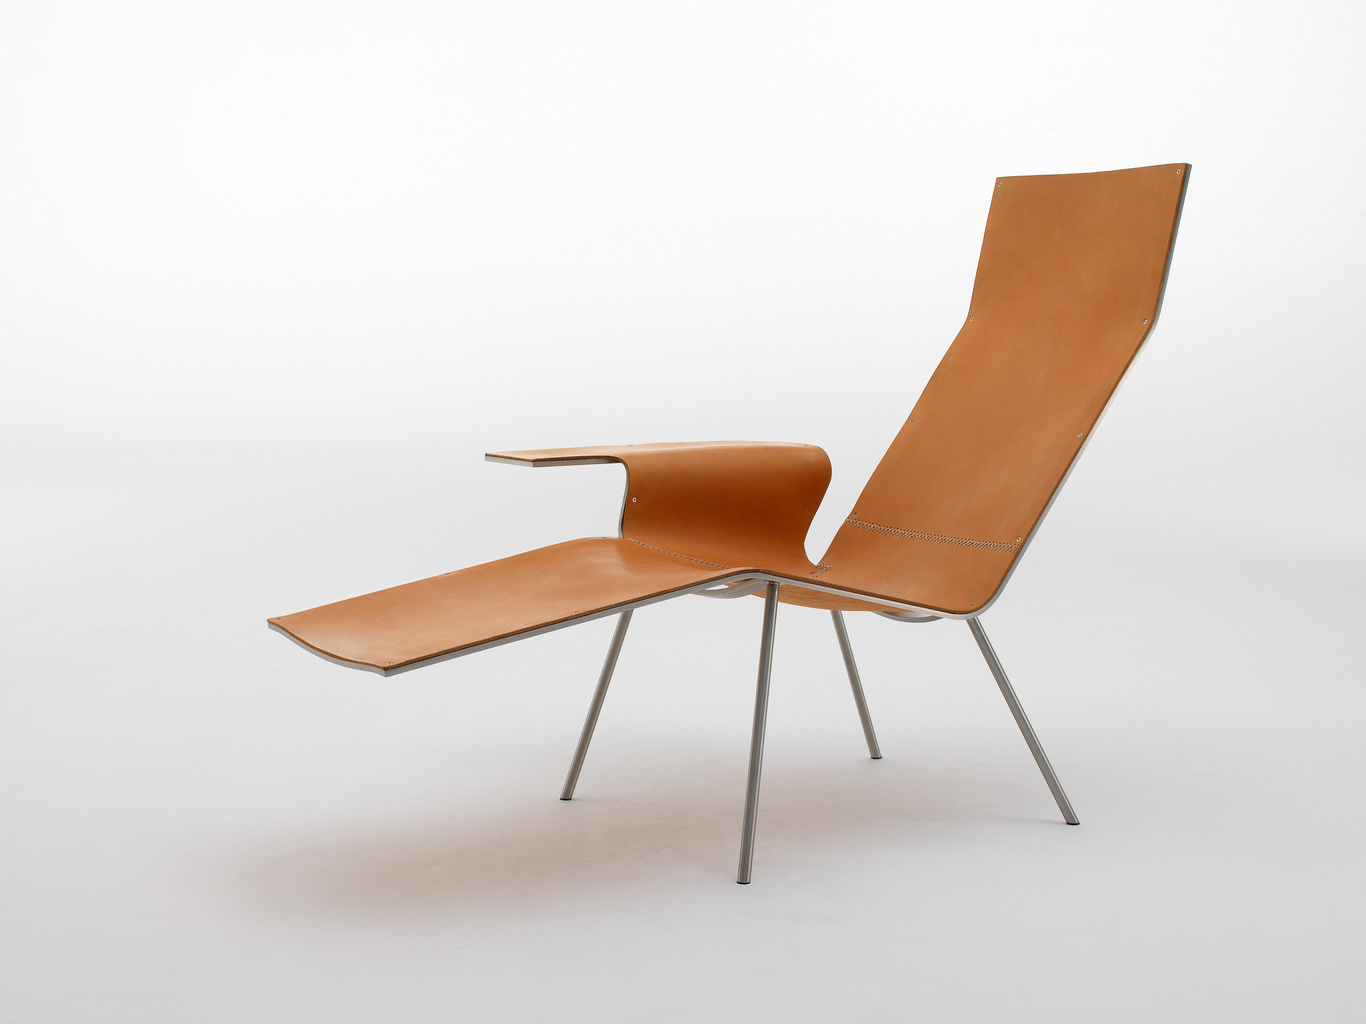 Lether Lounge chair van Maarten Van Severen voor Pastoe